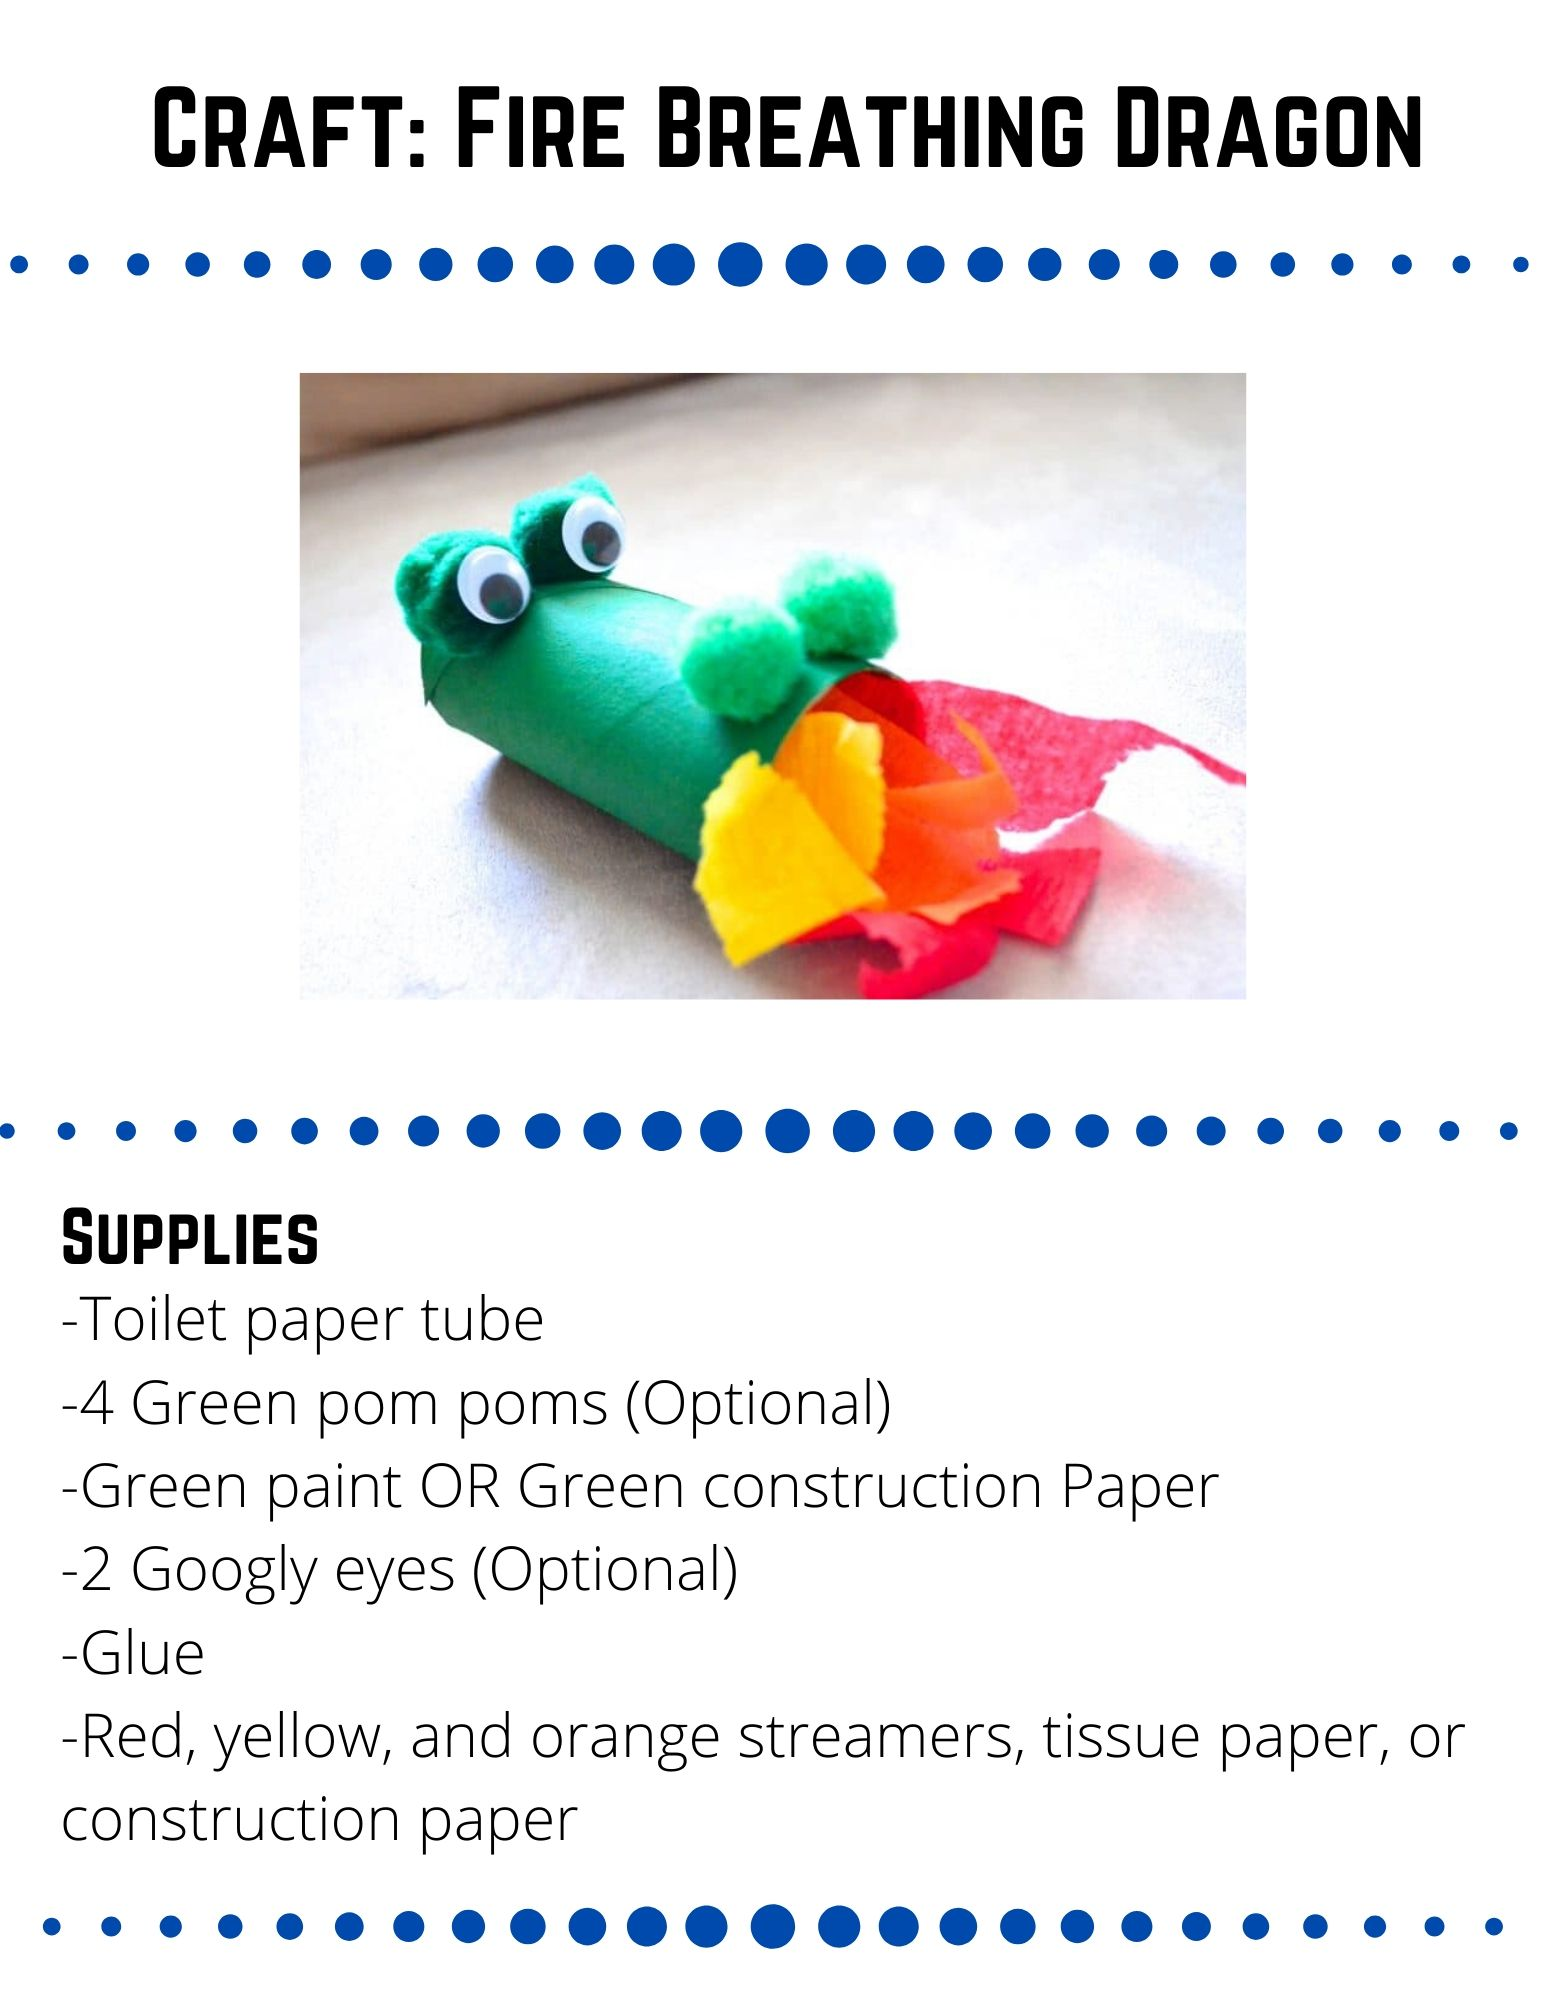 "Craft: Fire Breathing Dragon.  Supplies: -Toilet paper tube -4 Green pom poms (Optional) -Green paint OR Green construction Paper -2 Googly eyes (Optional) -Glue -Red, yellow, and orange streamers, tissue paper, or construction paper.  Paint your tube green OR cut a piece of construction paper to fit the tube and glue the paper around the tube to cover it.  Glue two pom poms on one side of the tube for eyes and two pom poms on the other side for nostrils. If you don't have pom poms, use construction paper.  Add googly eyes to your pom poms or use construction paper and markers to create eyes.  Tape red, yellow, and orange streamers into the dragons mouth.  Blow into the dragon to make it ""breathe fire!"""